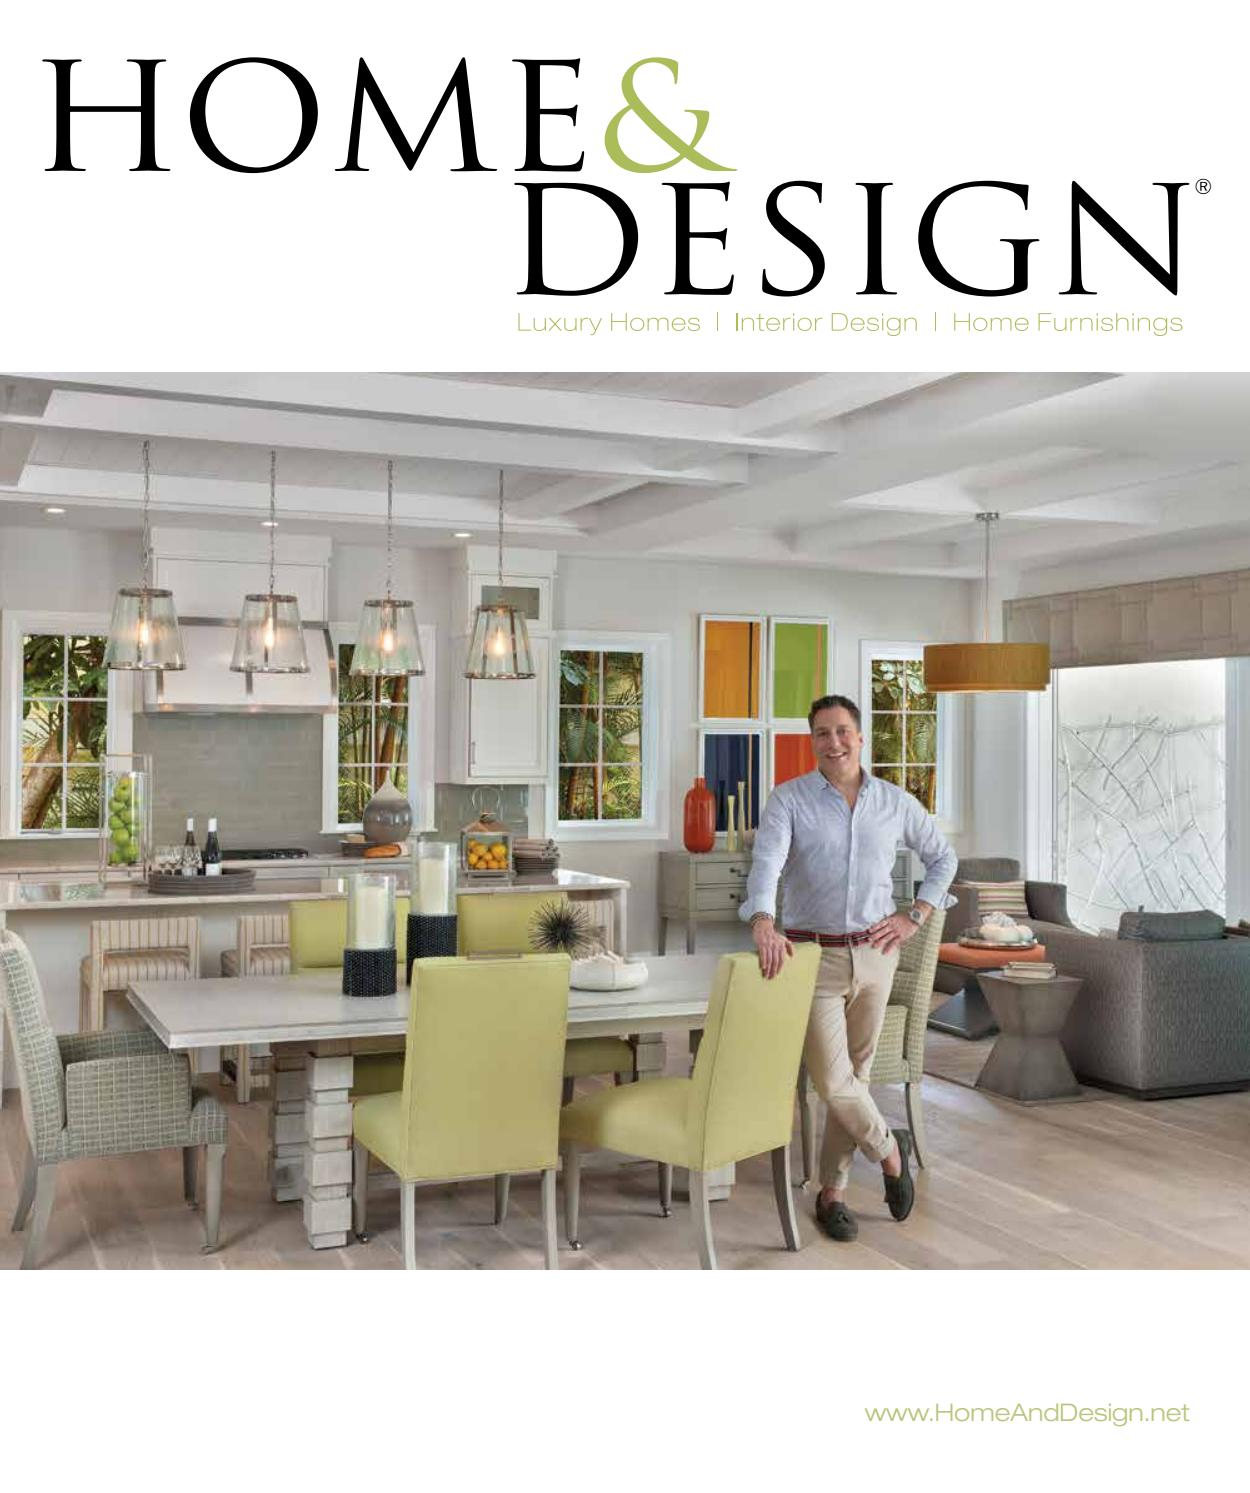 pretty home designs furniture. Home  Design Magazine Suncoast Florida Edition 2018 by Anthony Spano issuu